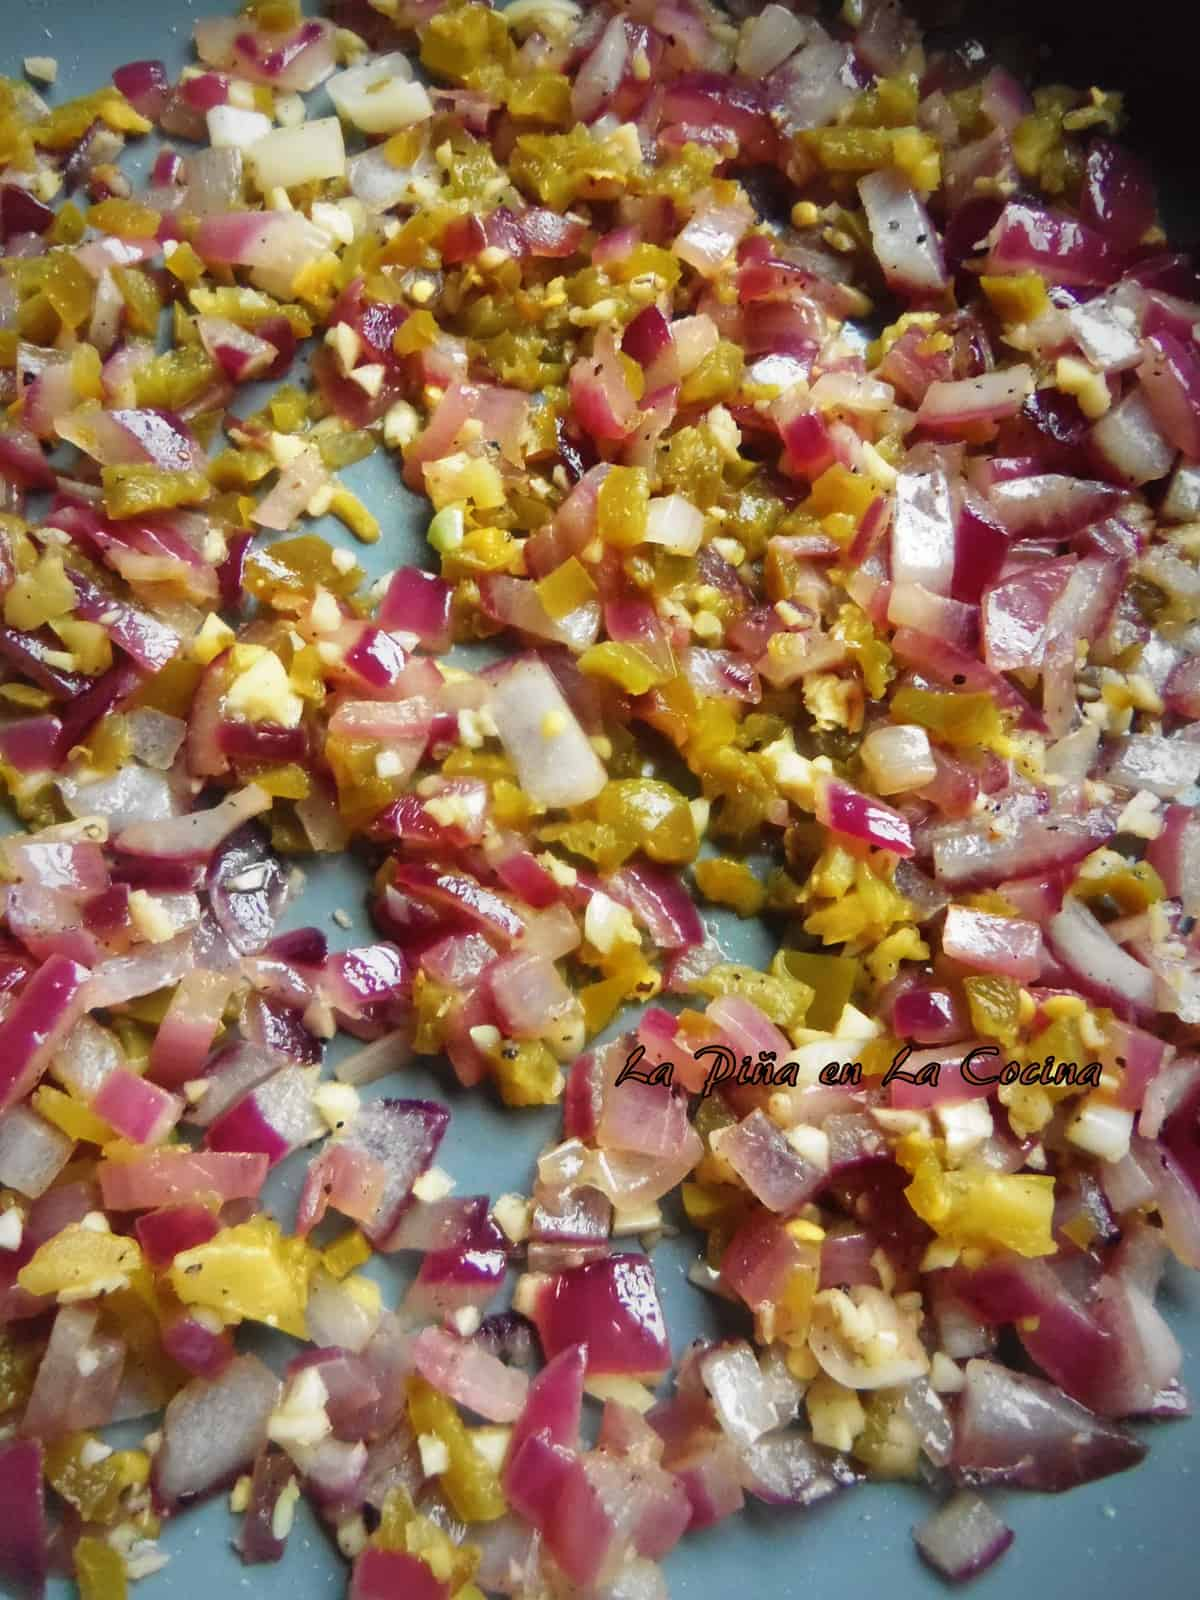 Saute of red onions, garlic and pickled jalapeños